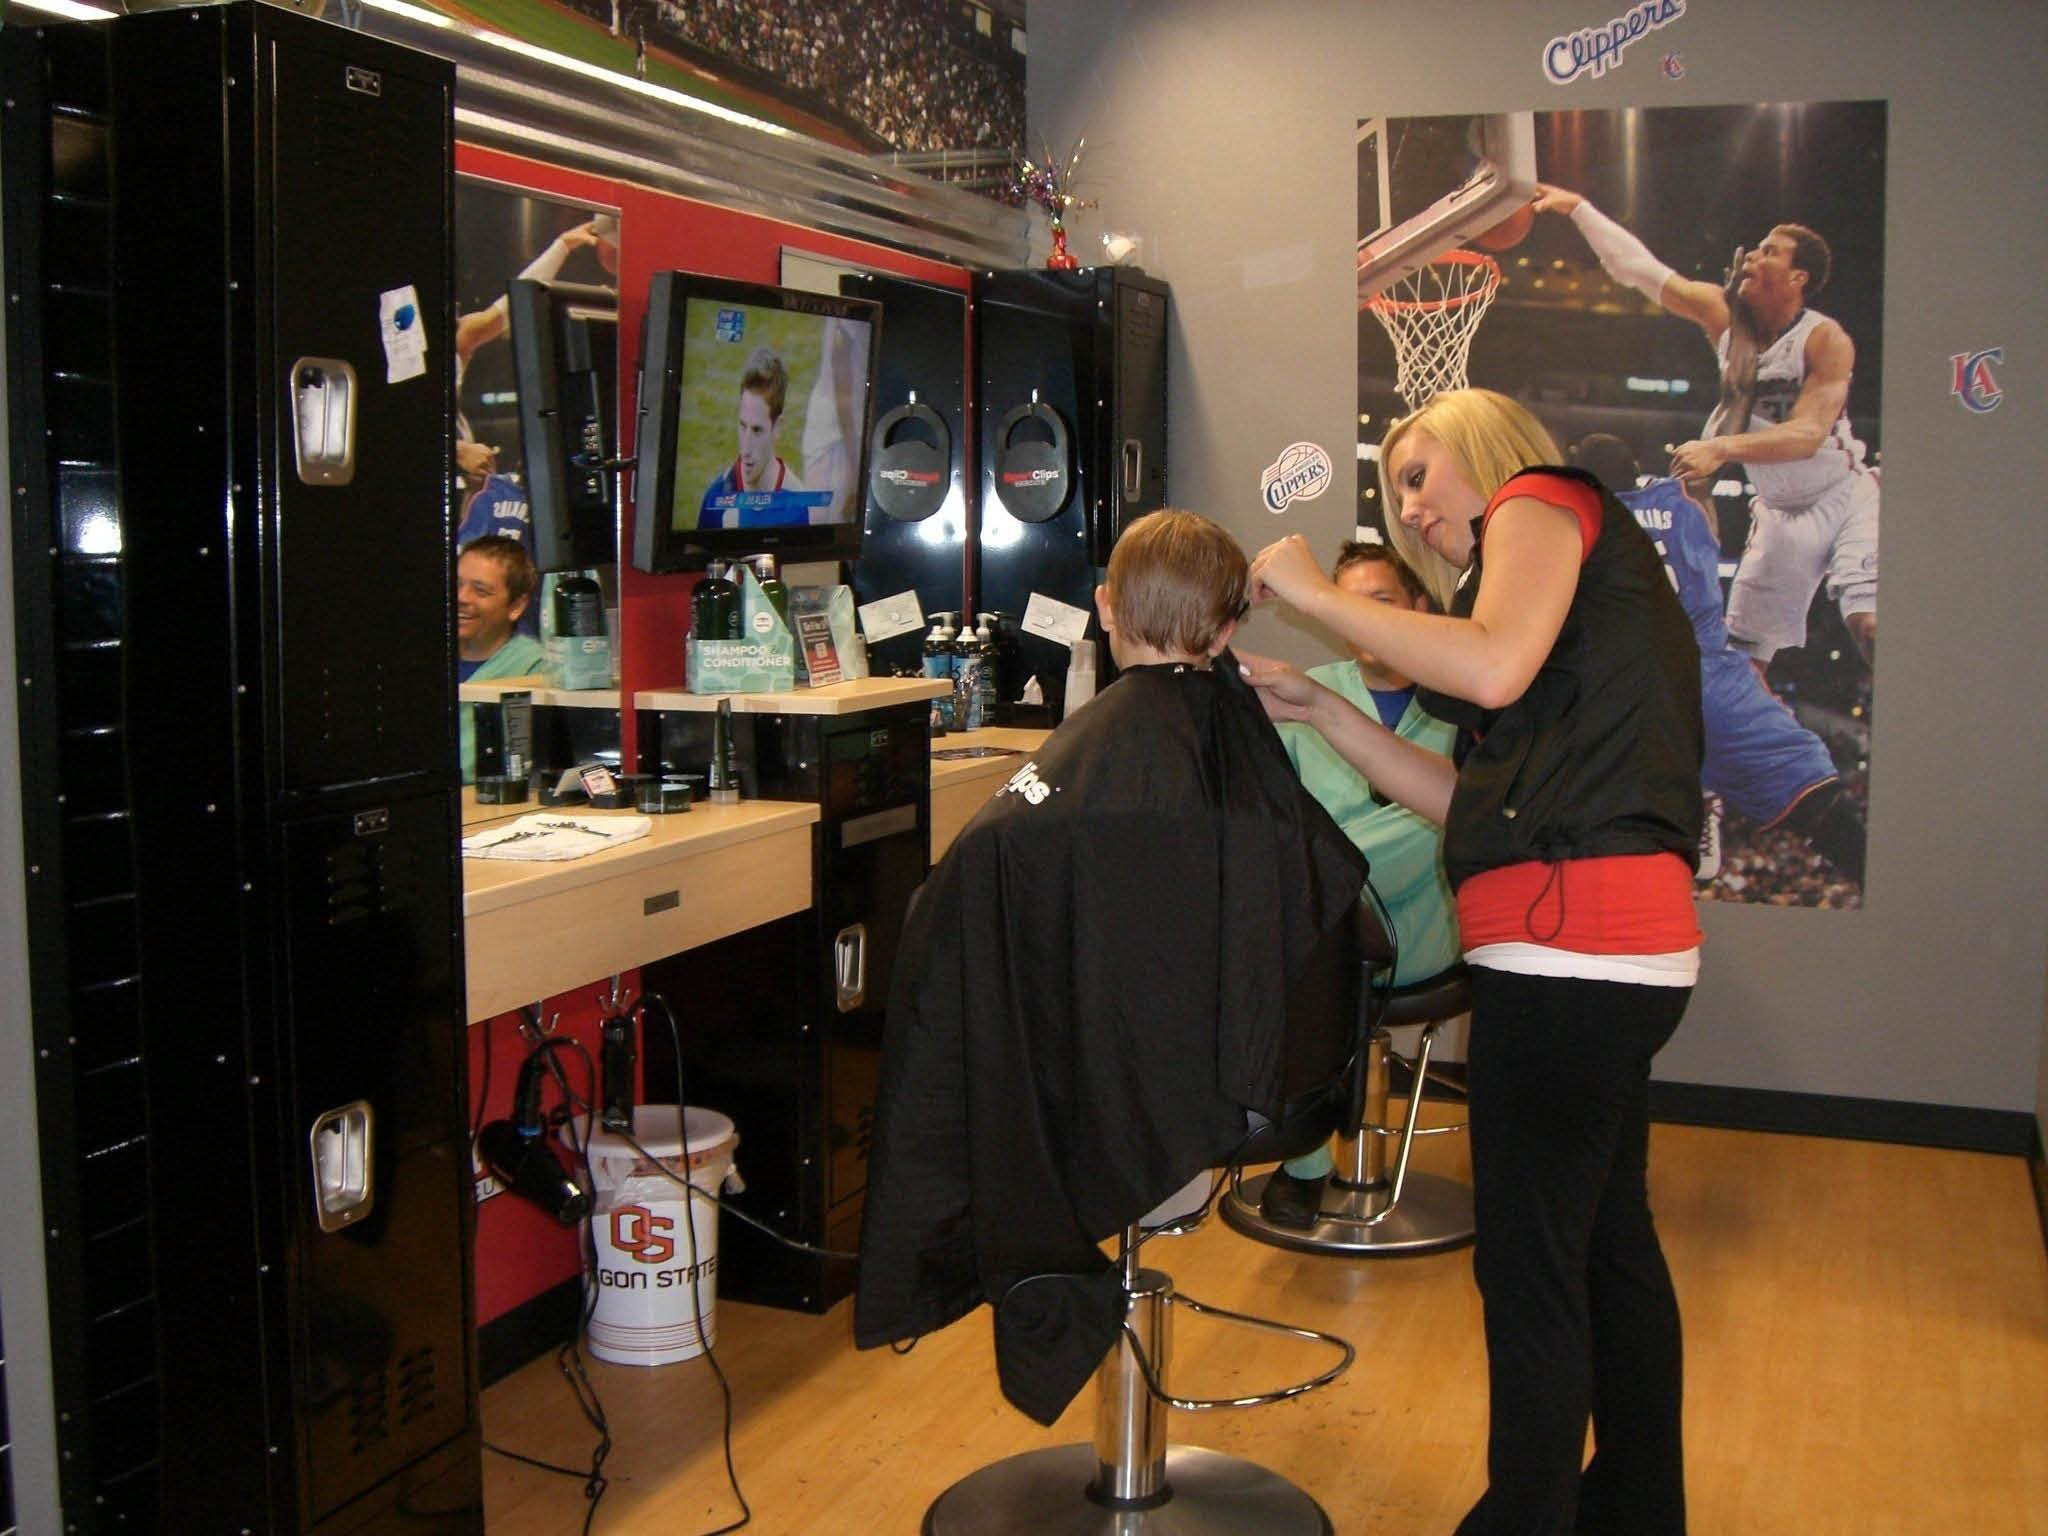 The Best Sport Clips In Towson Md Local Coupons January 09 2018 Pictures